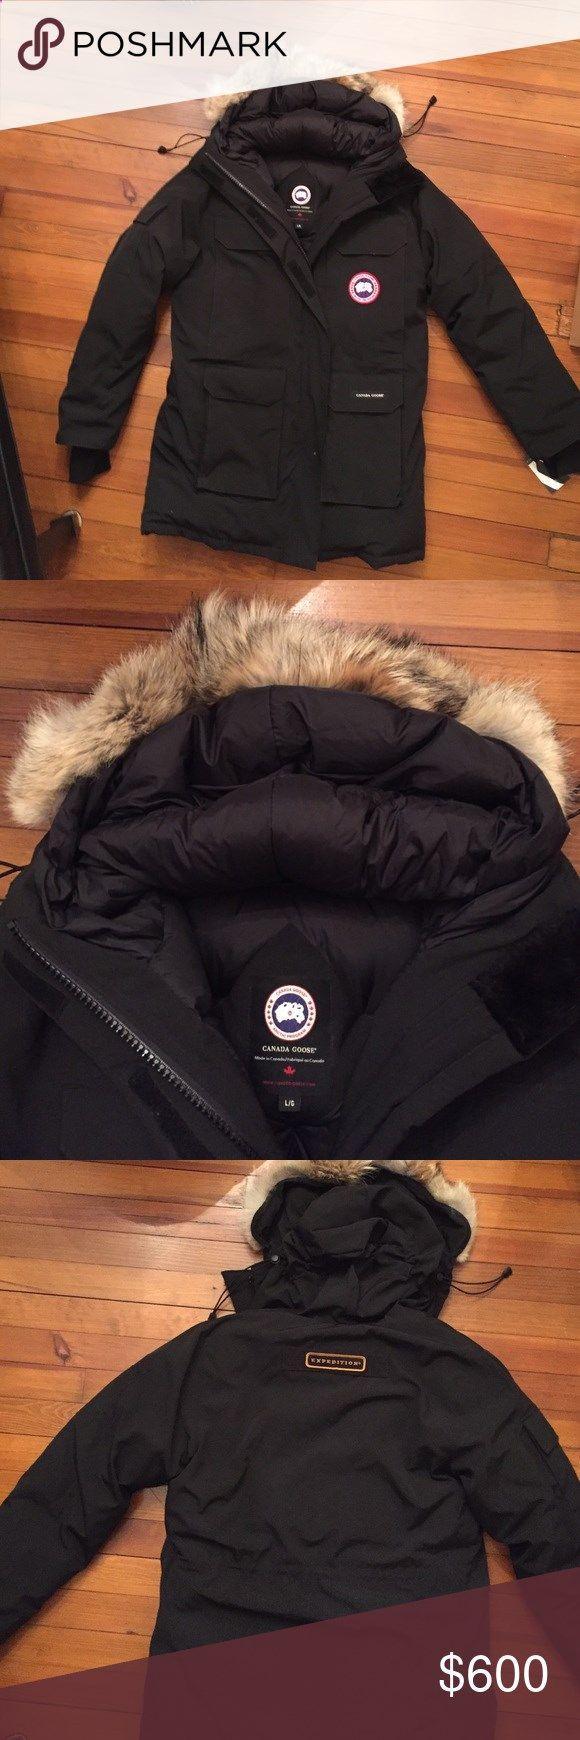 Canada Goose Expedition Parka like new womens Lg Canada Goose Expedition Parka womens large black with coyote fur trimmed hood literally worn maybe twice. I have a neck issue and the Parka is just too heavy for me. Warm as can be with adjustable cinch waist. A Steal. Pristine condition. Originally developed for scientists at McMurdo station in Antarctica. A rugged water-resistant shell stands the test of time, while a superior 625-fill-power down blend offers incomparable warmth when t...